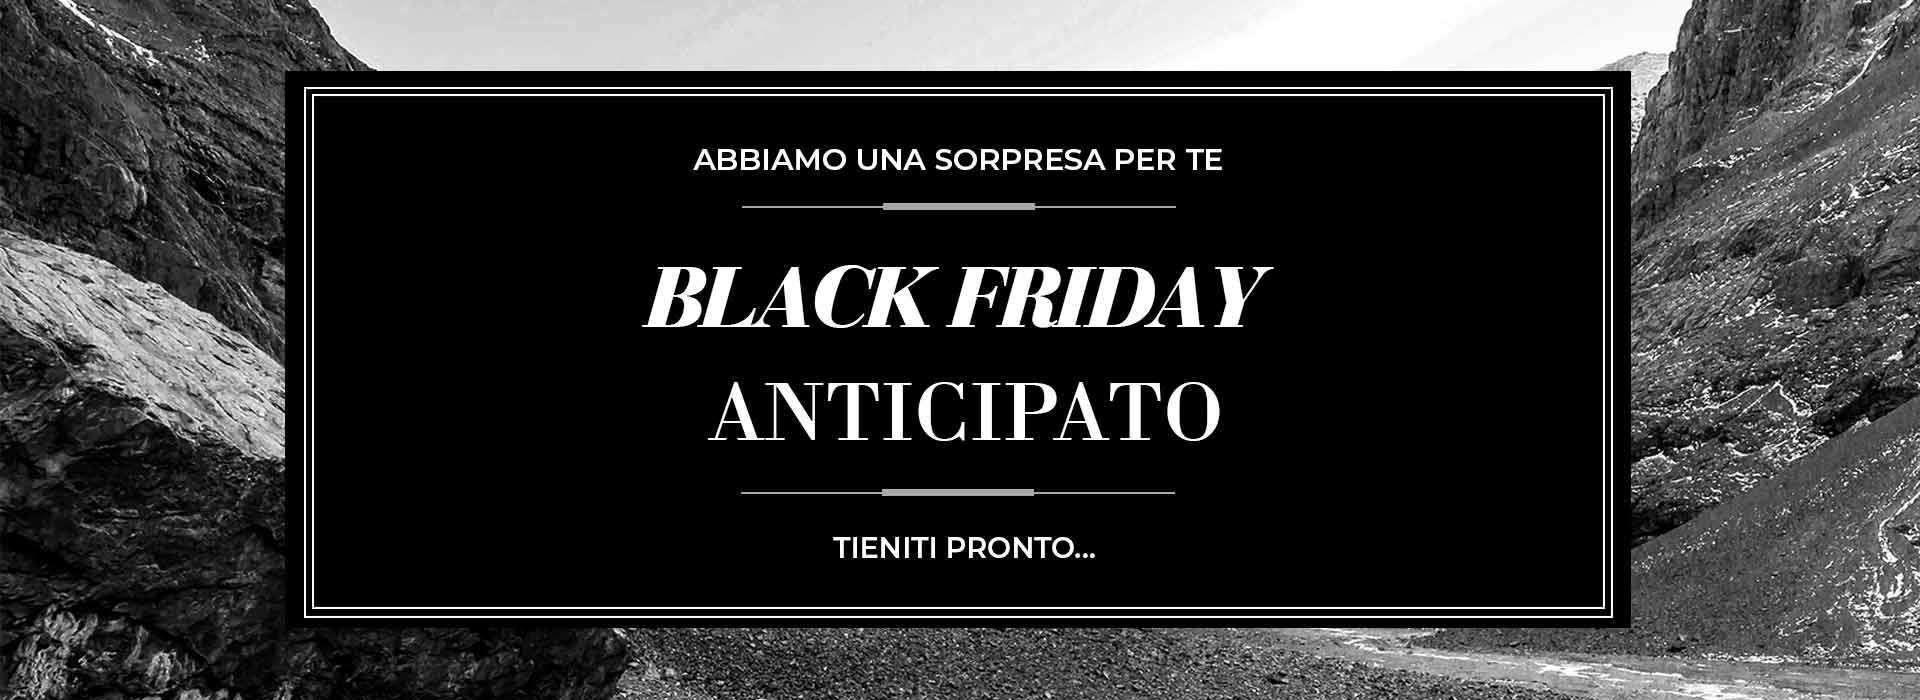 Tieniti pronto: il Black Friday anticipato!